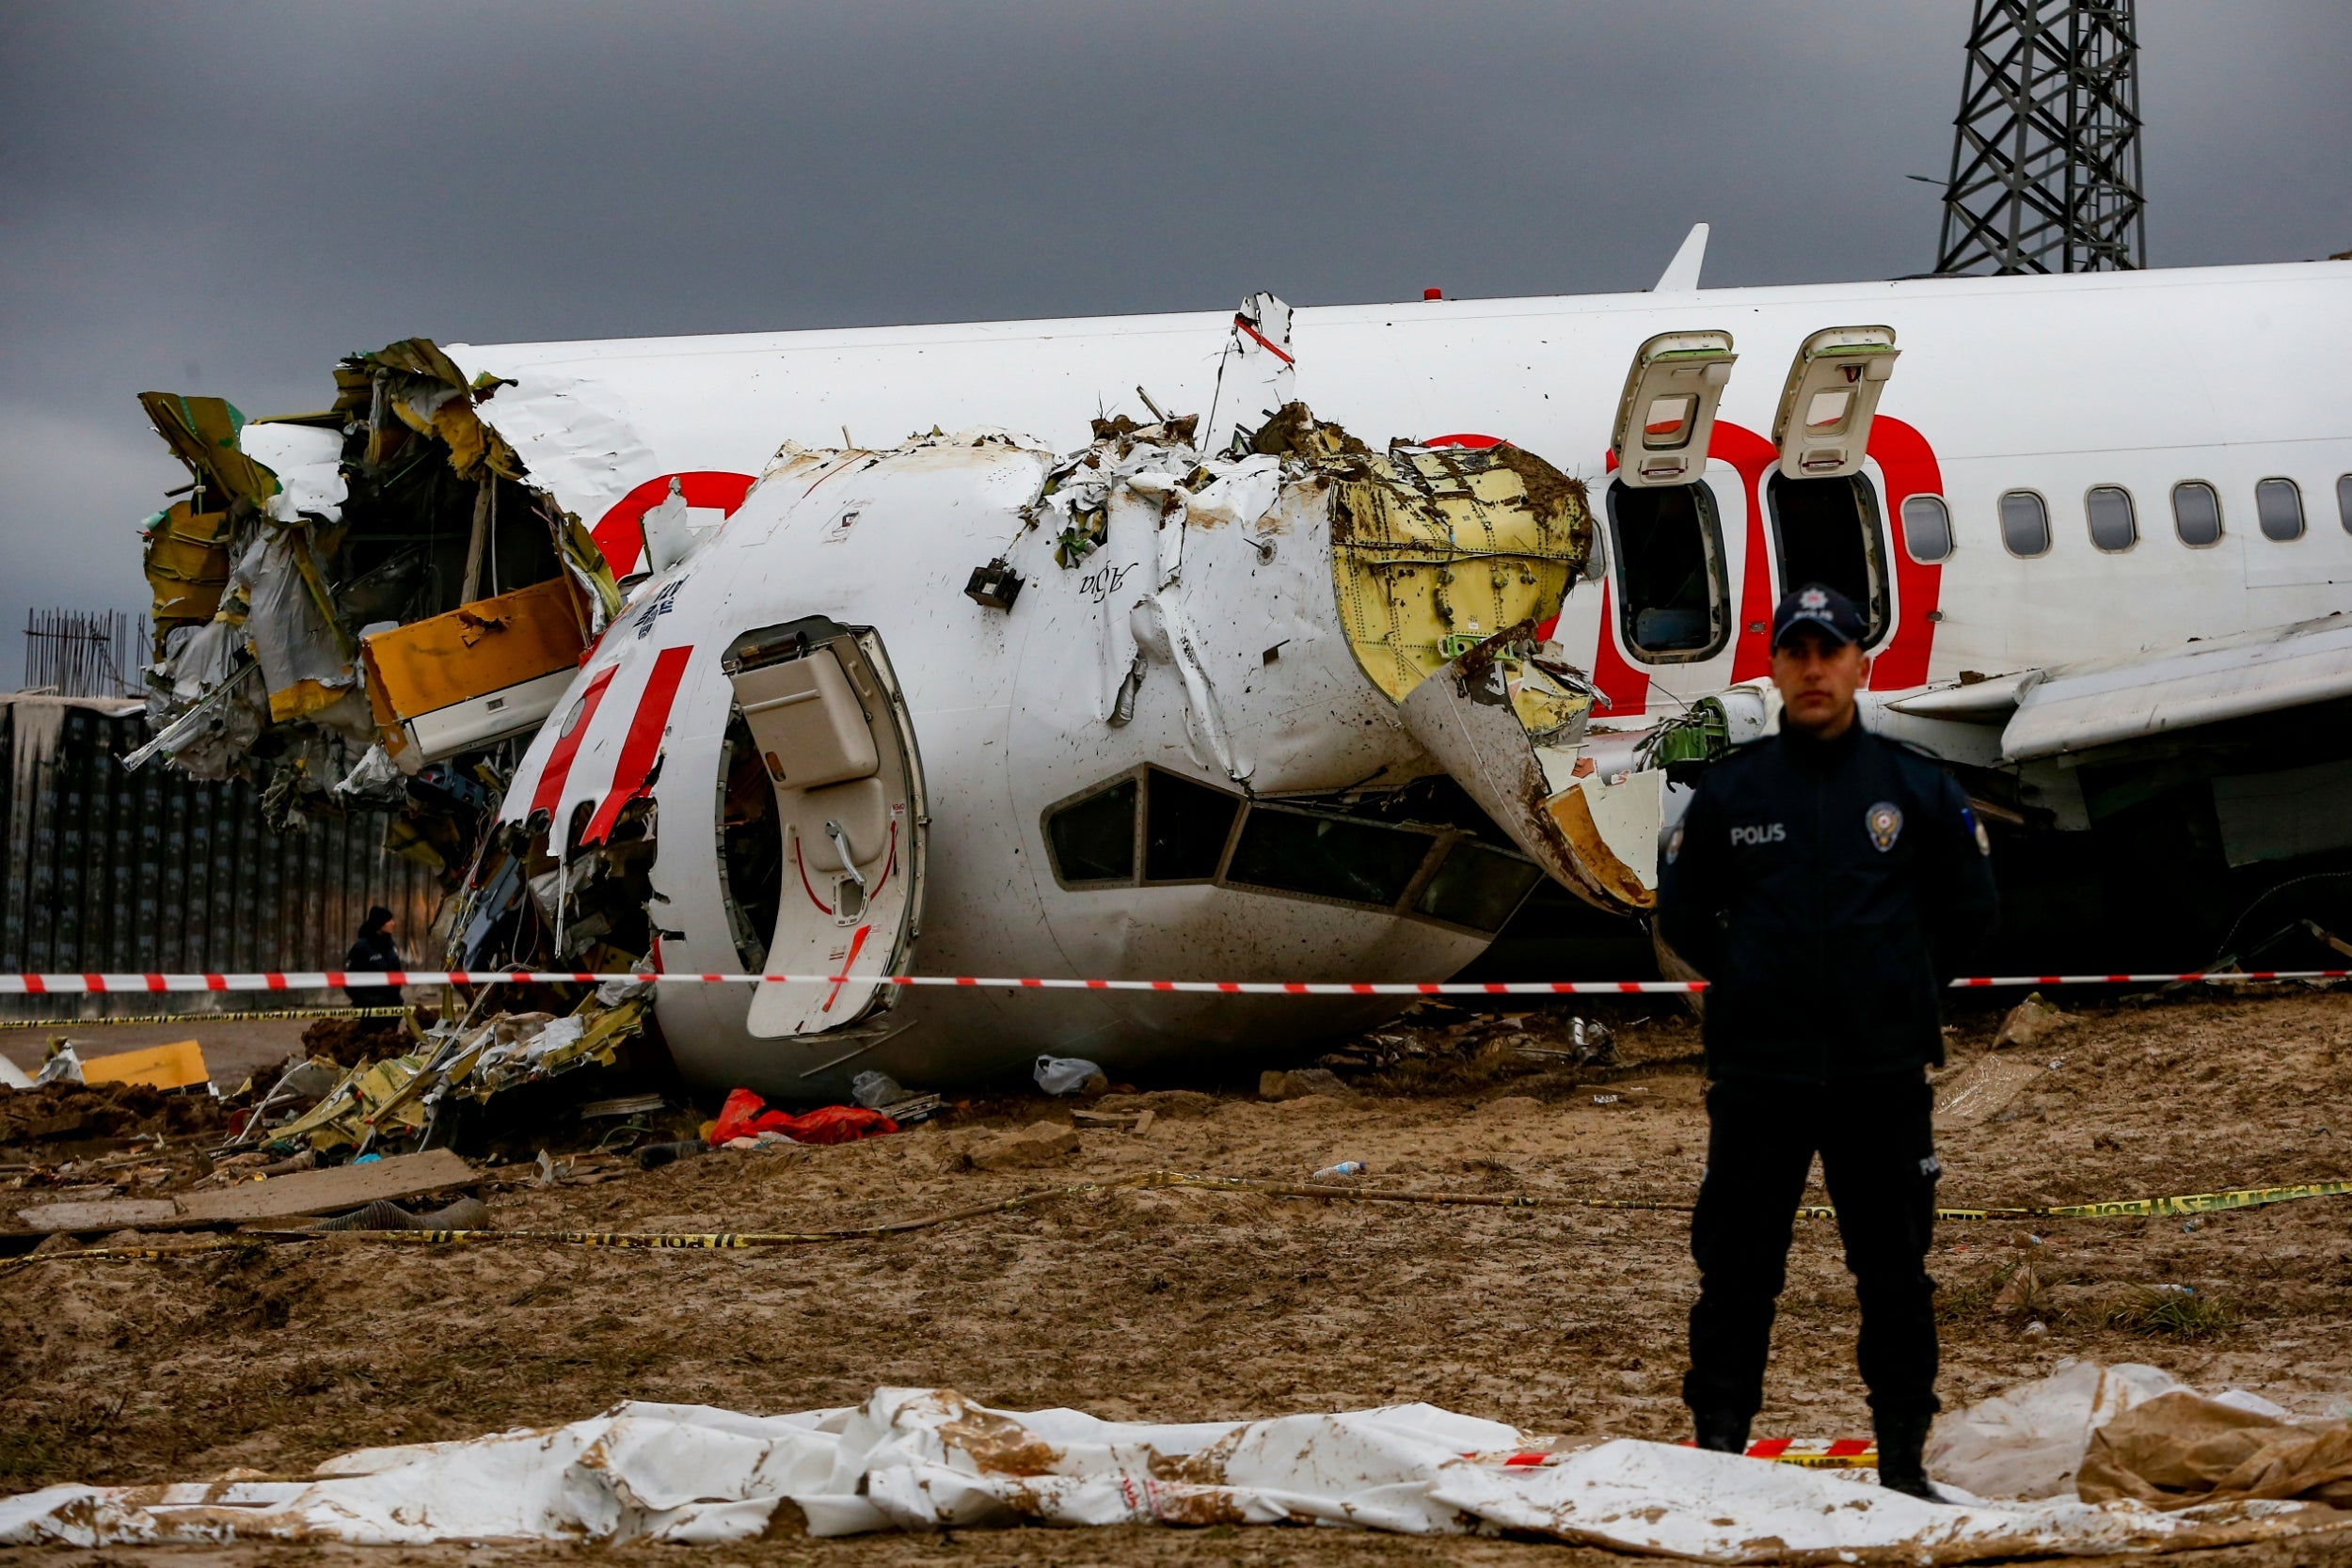 Pilot arrested after plane skids off runway, killing three people